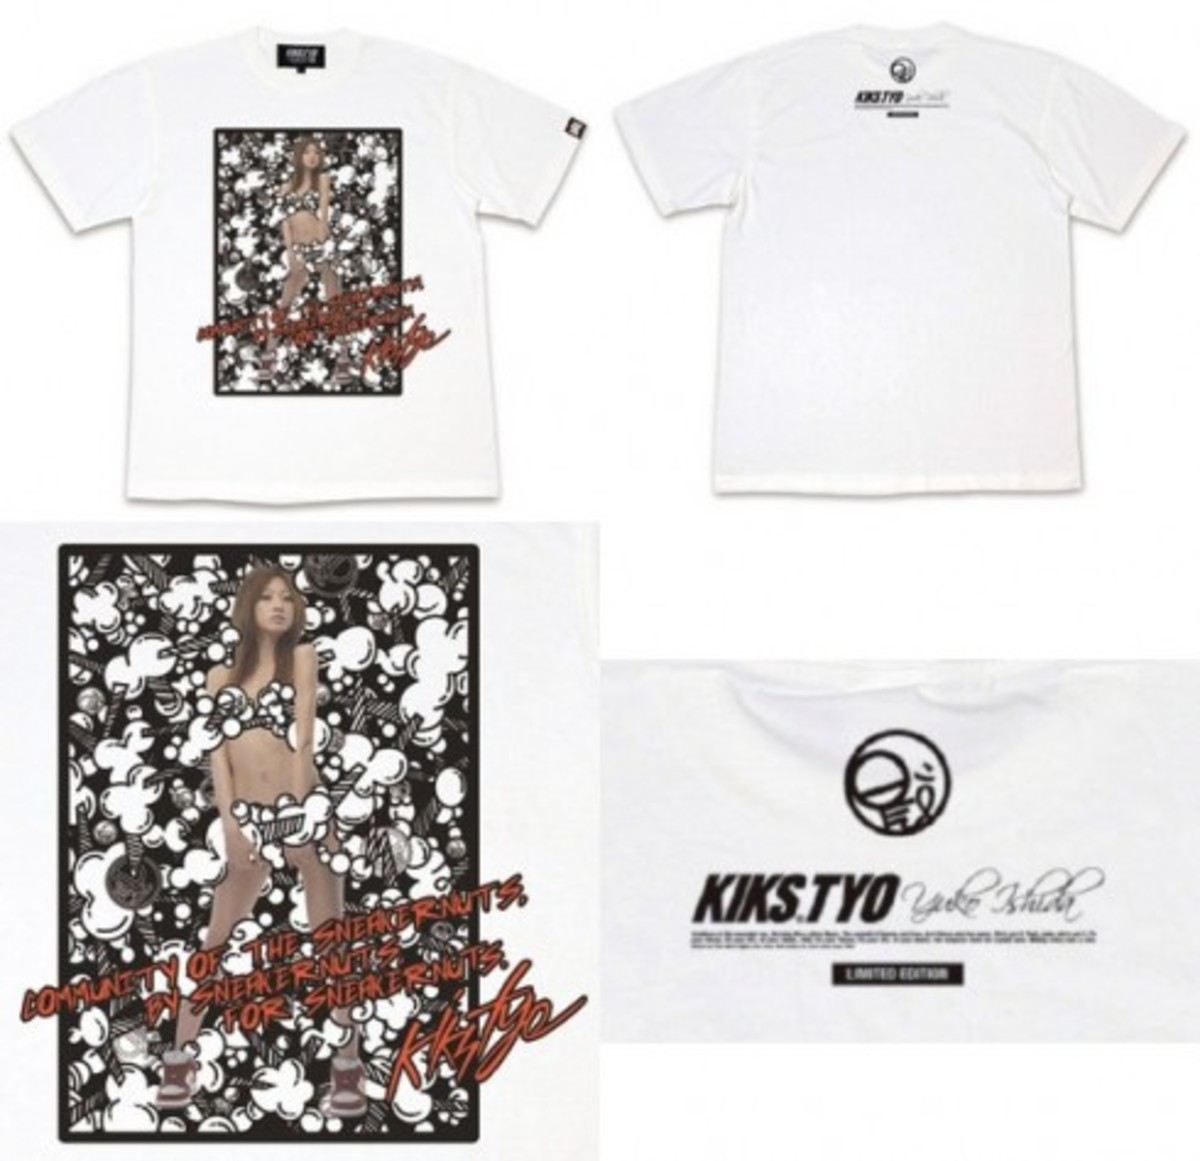 Nic is Coming x KIKS TYO - Collaboration T-Shirt - 2